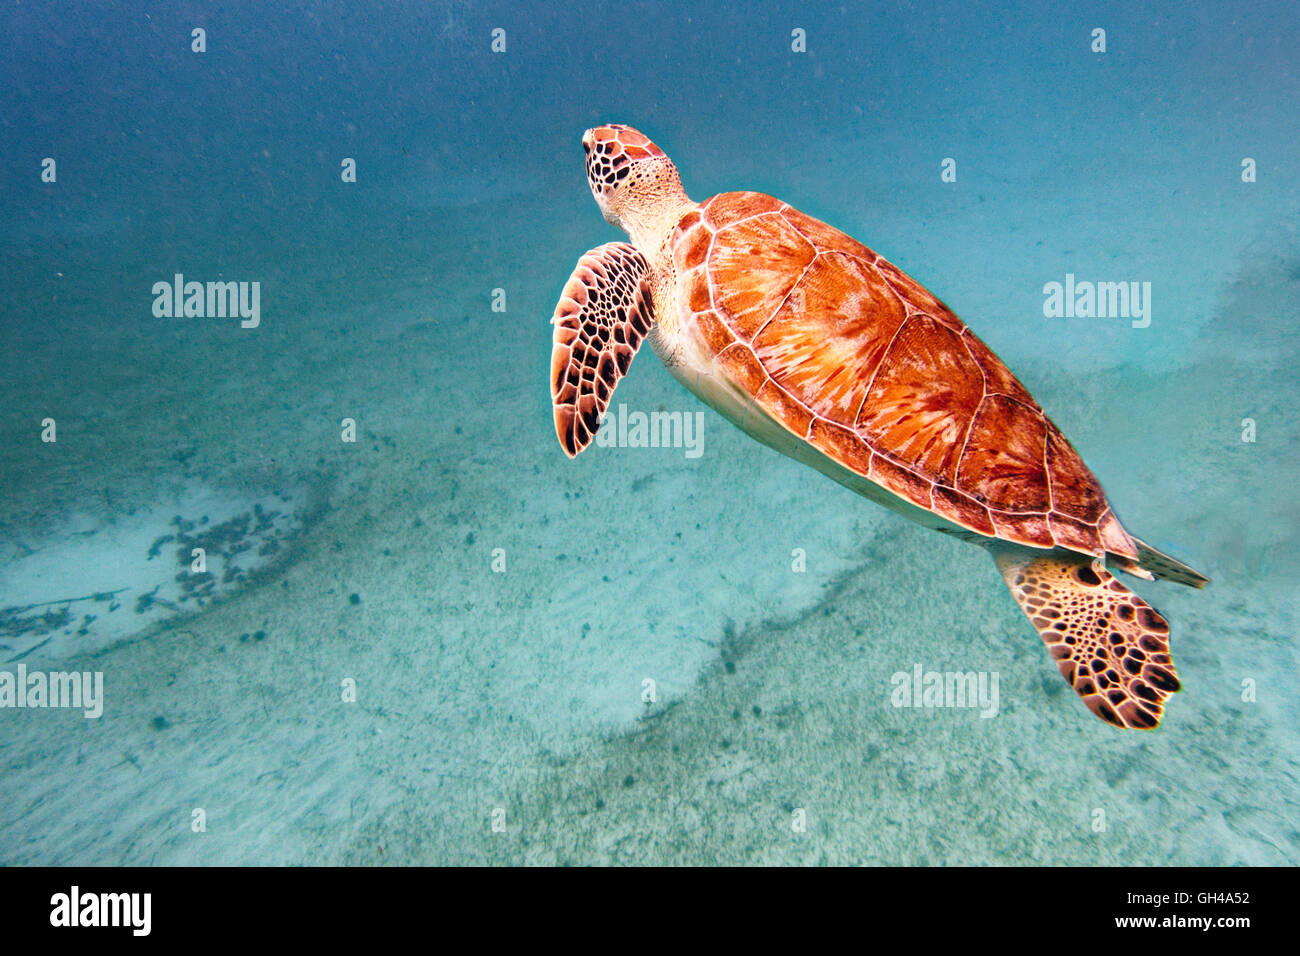 Close Up View of a Young Green Turtle Swimming Underwater, Buck Island National Wildlife Refuge, St Croix, US Virgin - Stock Image